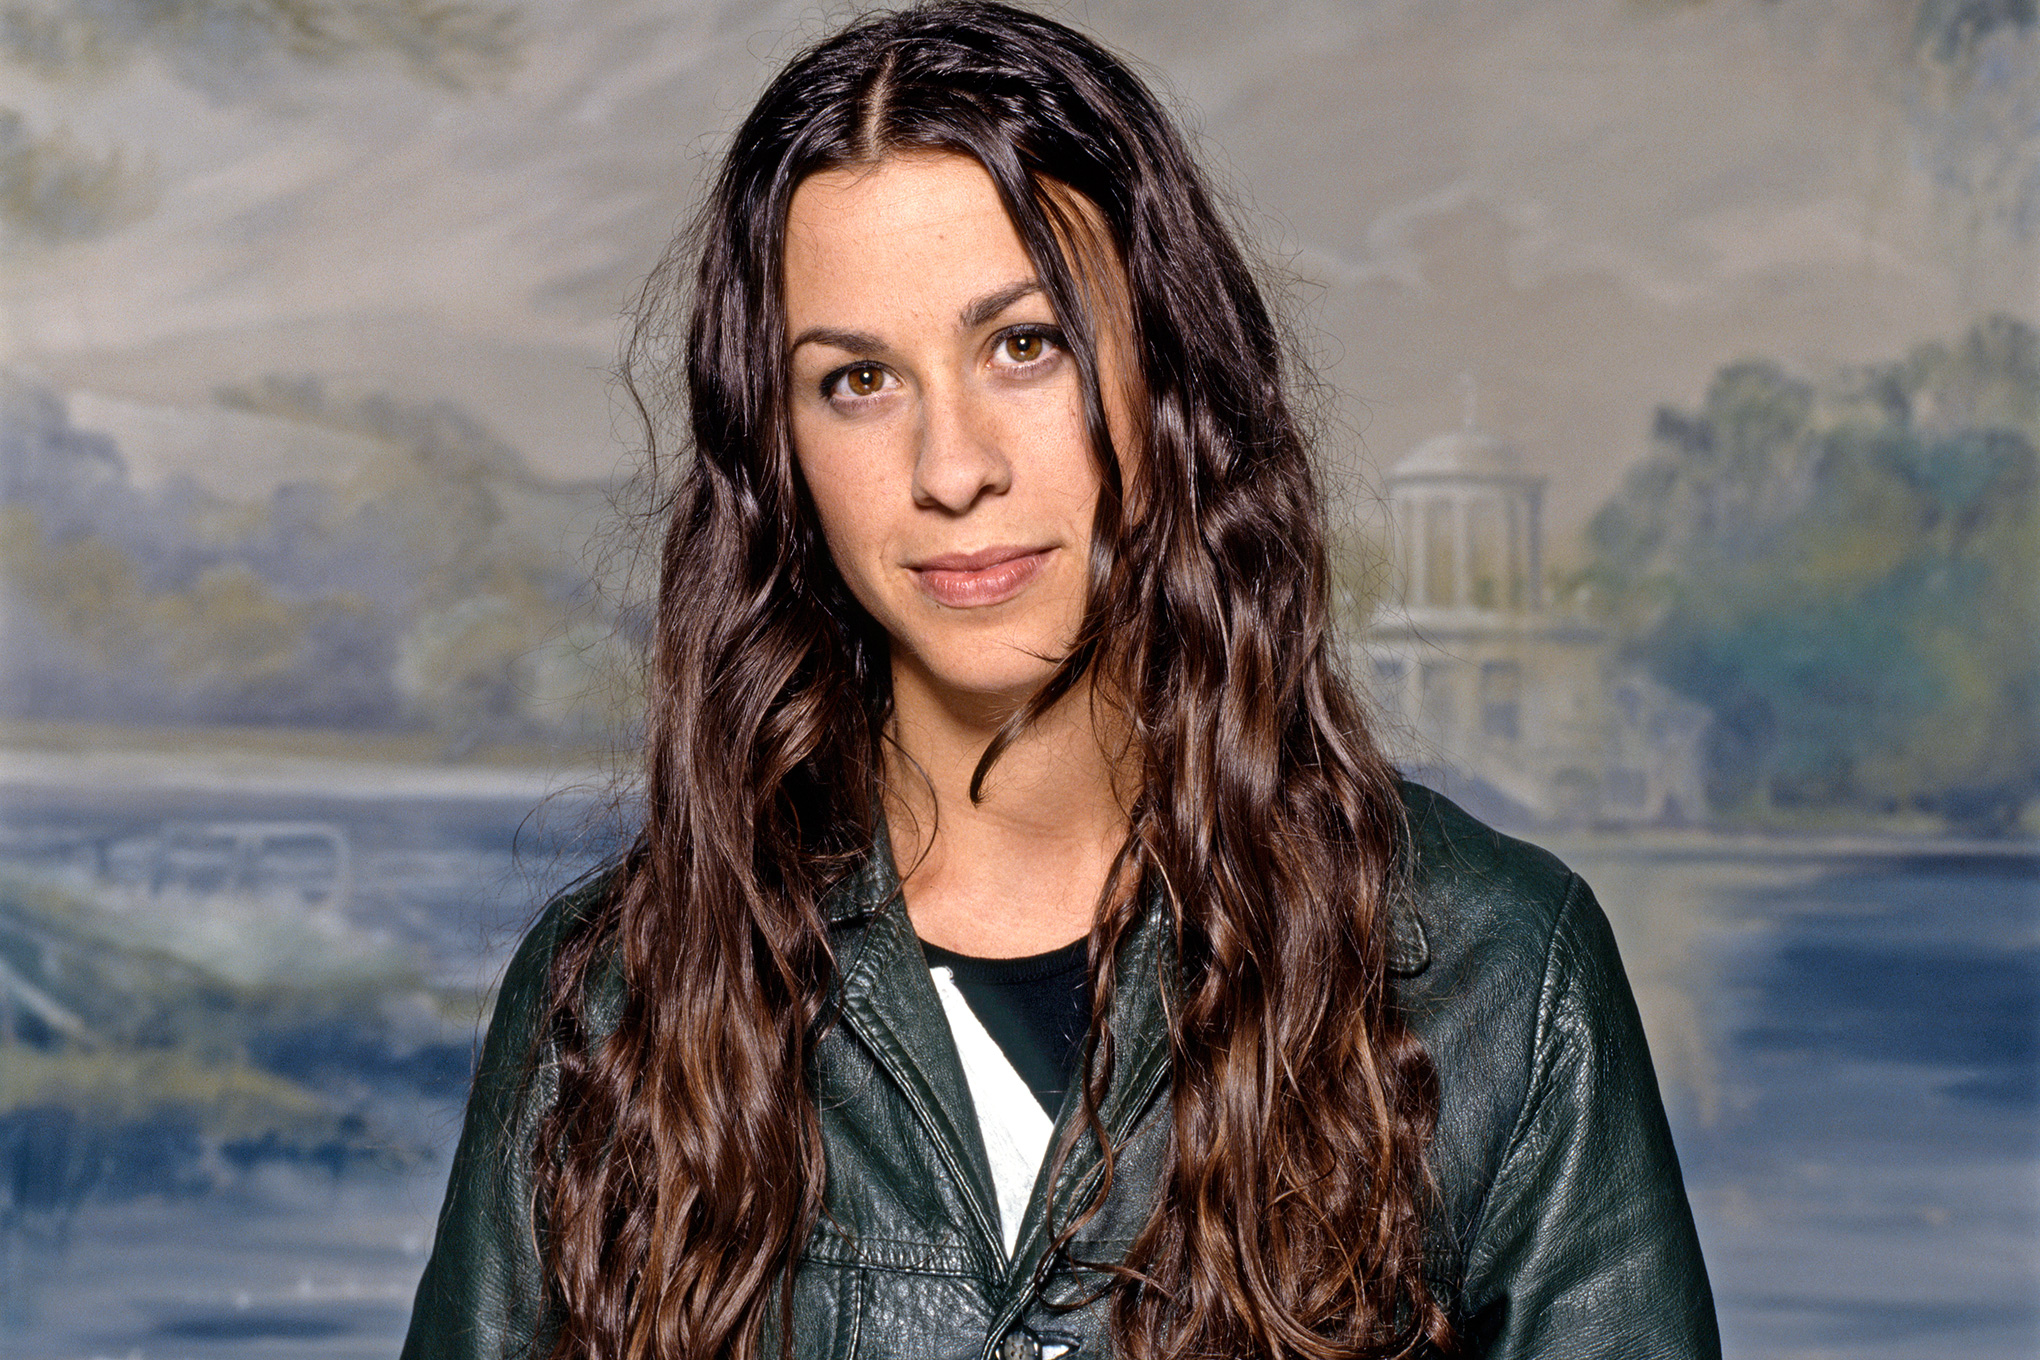 Alanis Morissette - Public Speaking & Appearances - Speakerpedia, Discover & Follow a World of Compelling Voices